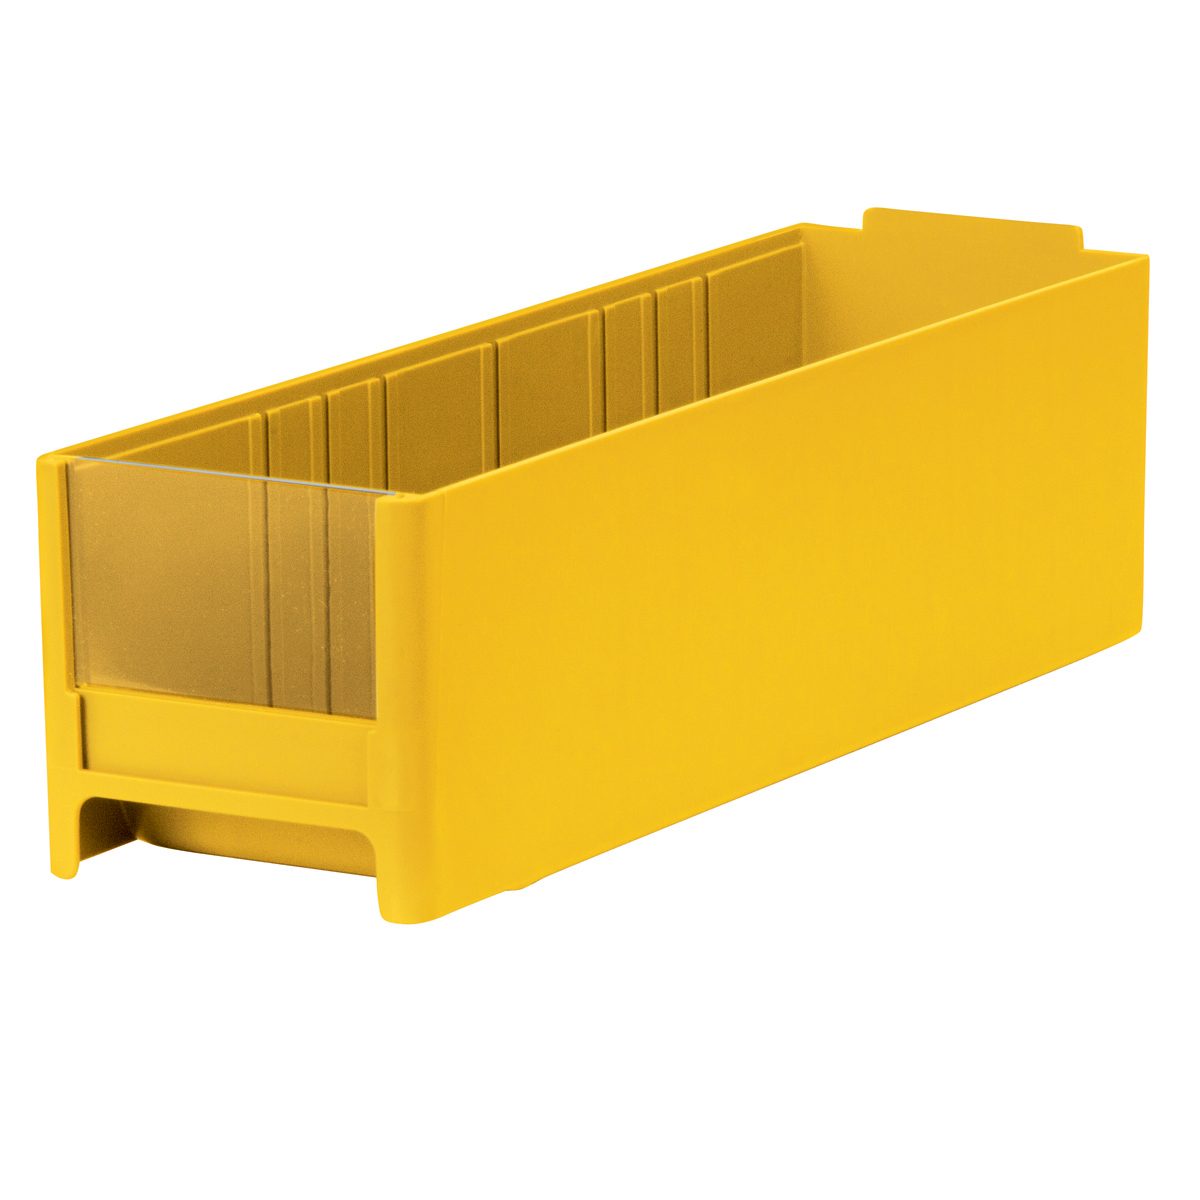 19-Series Cabinet Drawer 3-3/16 x 3-1/16 x 10-9/16, Yellow.  This item sold in carton quantities of 30.